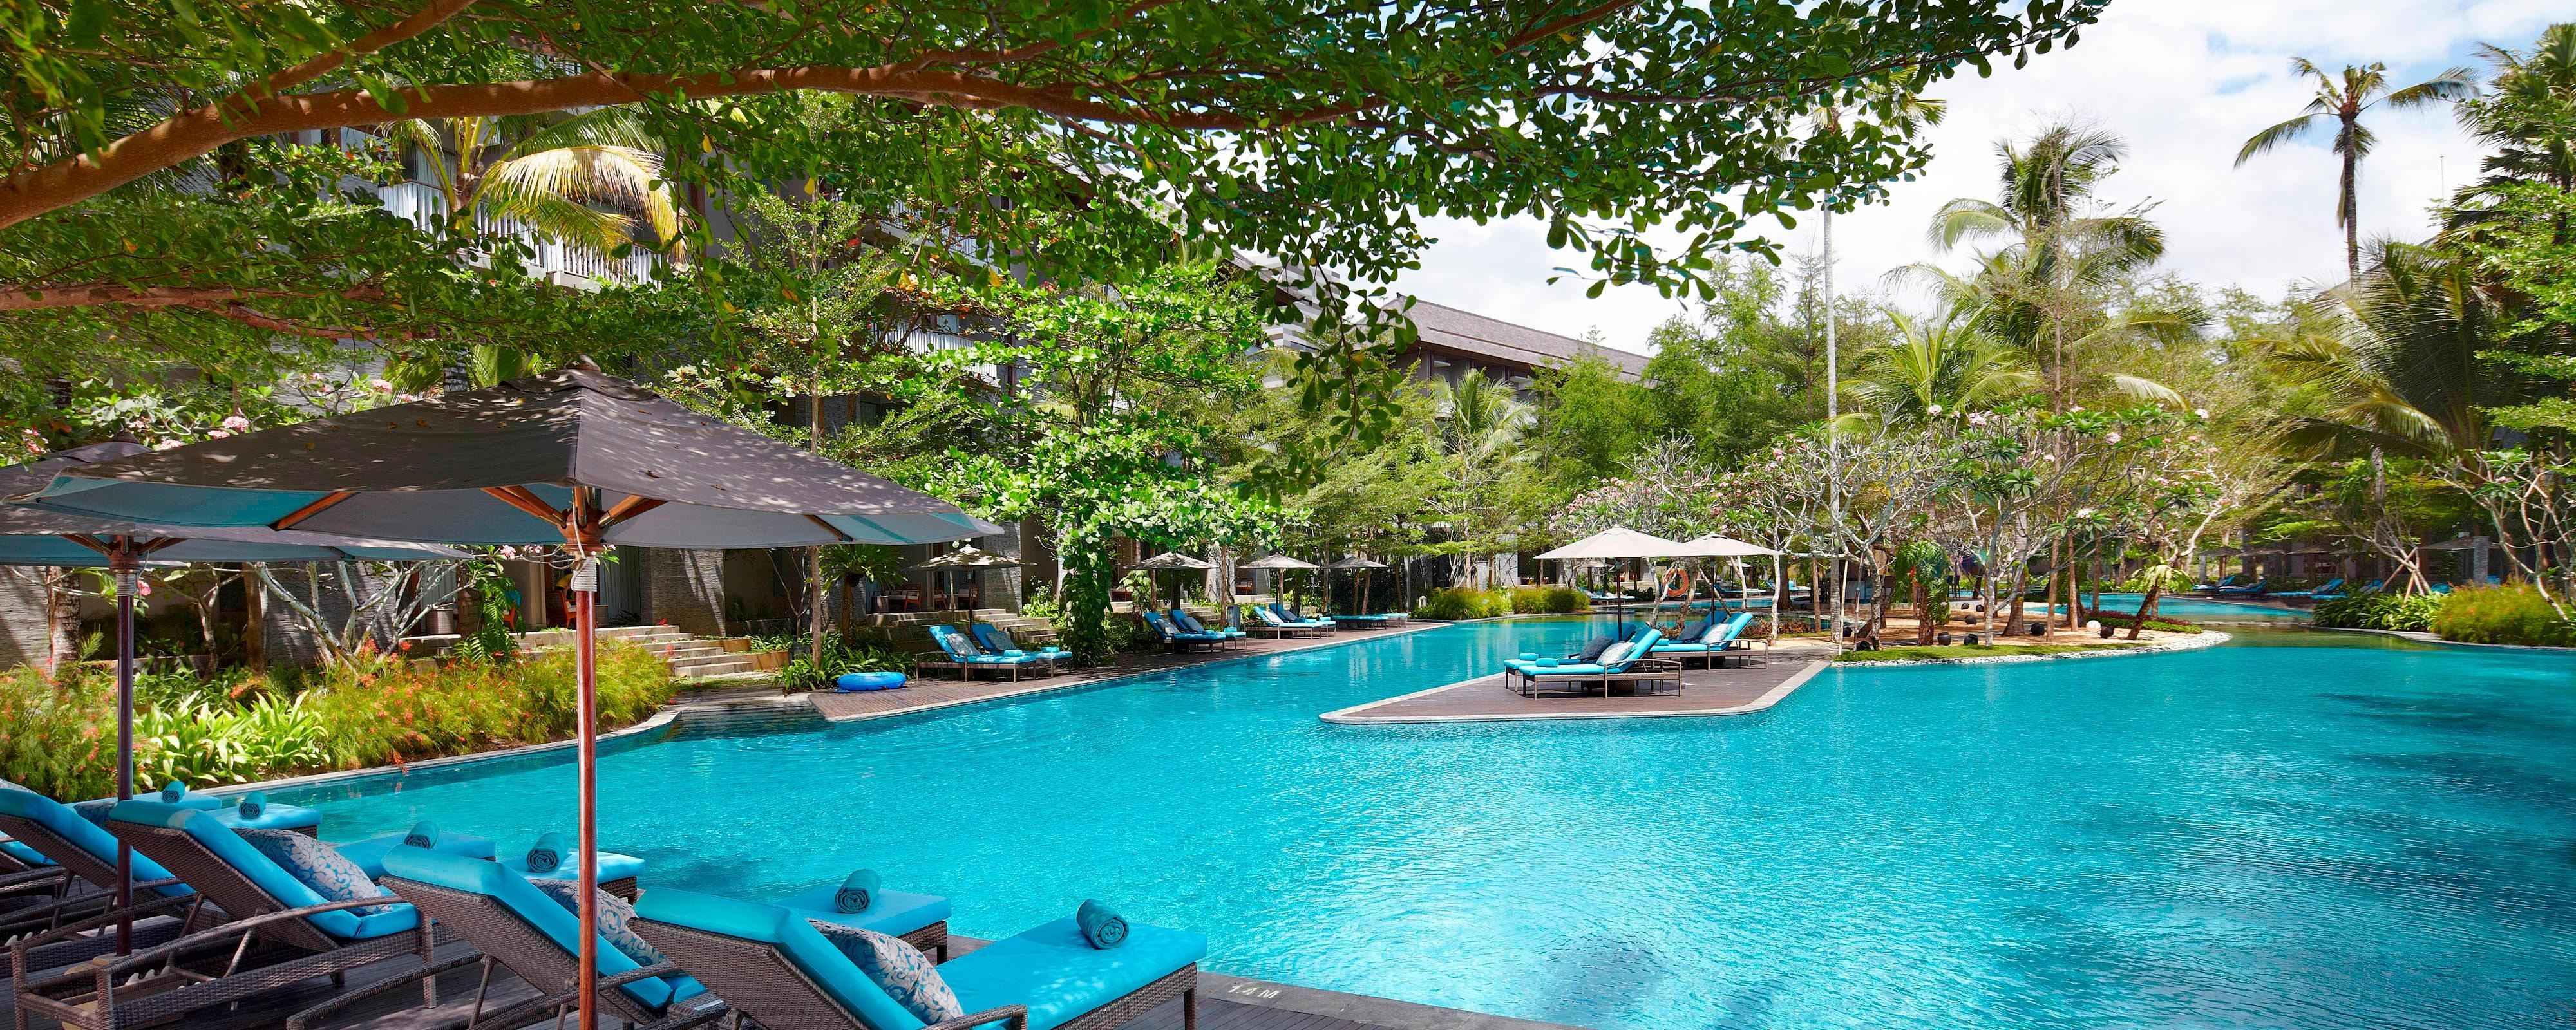 Outdoor pool at Bali hotel